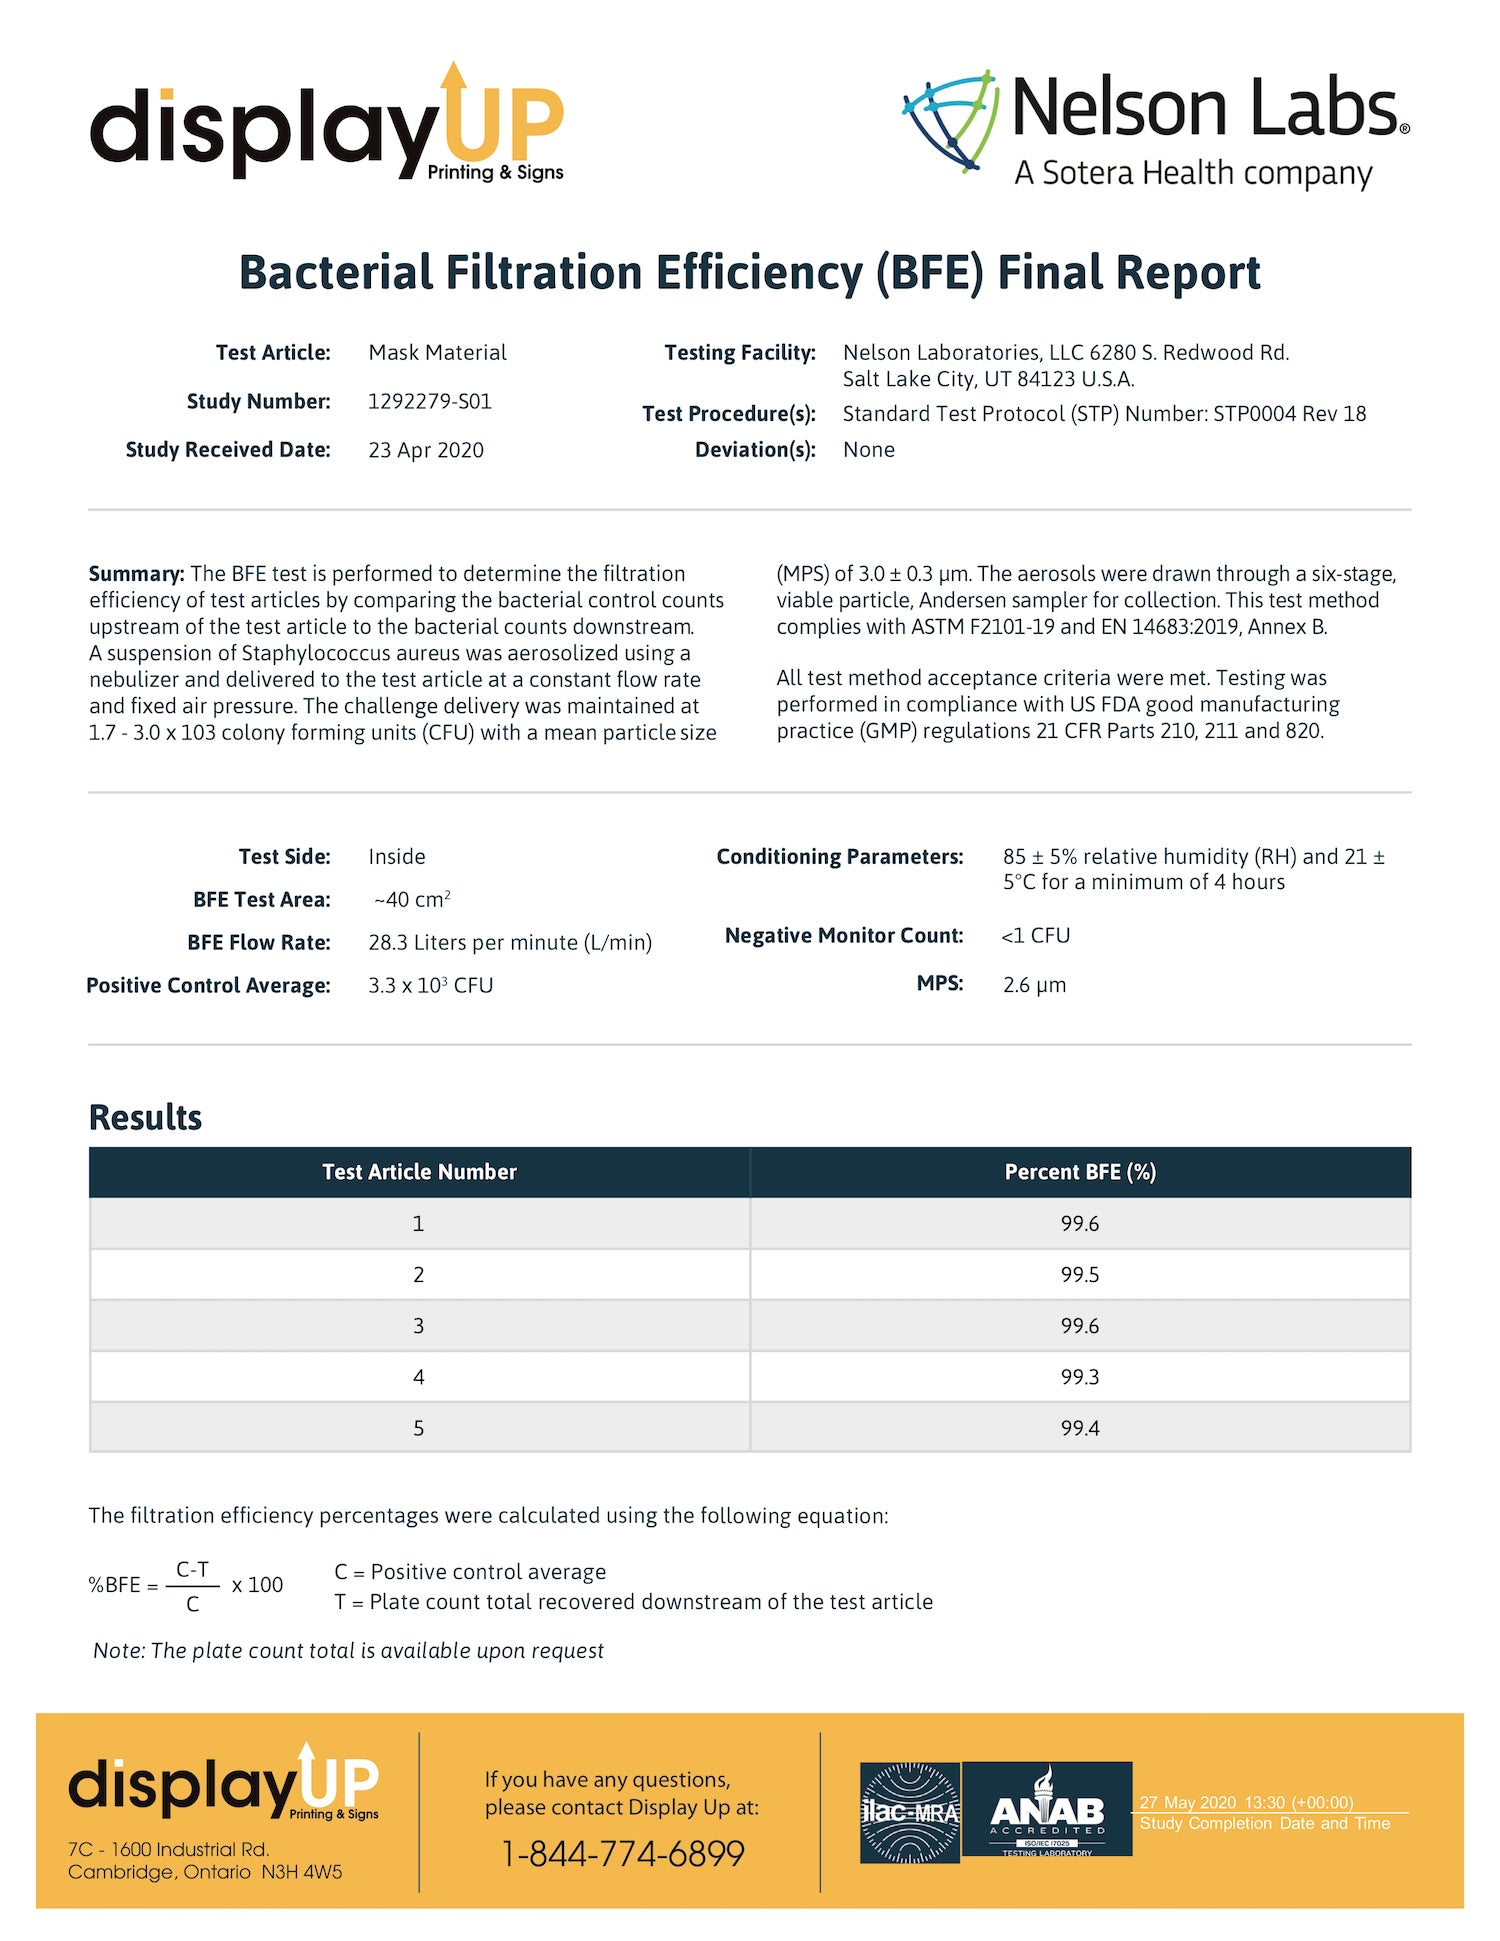 Mask Filter BFE Test Results